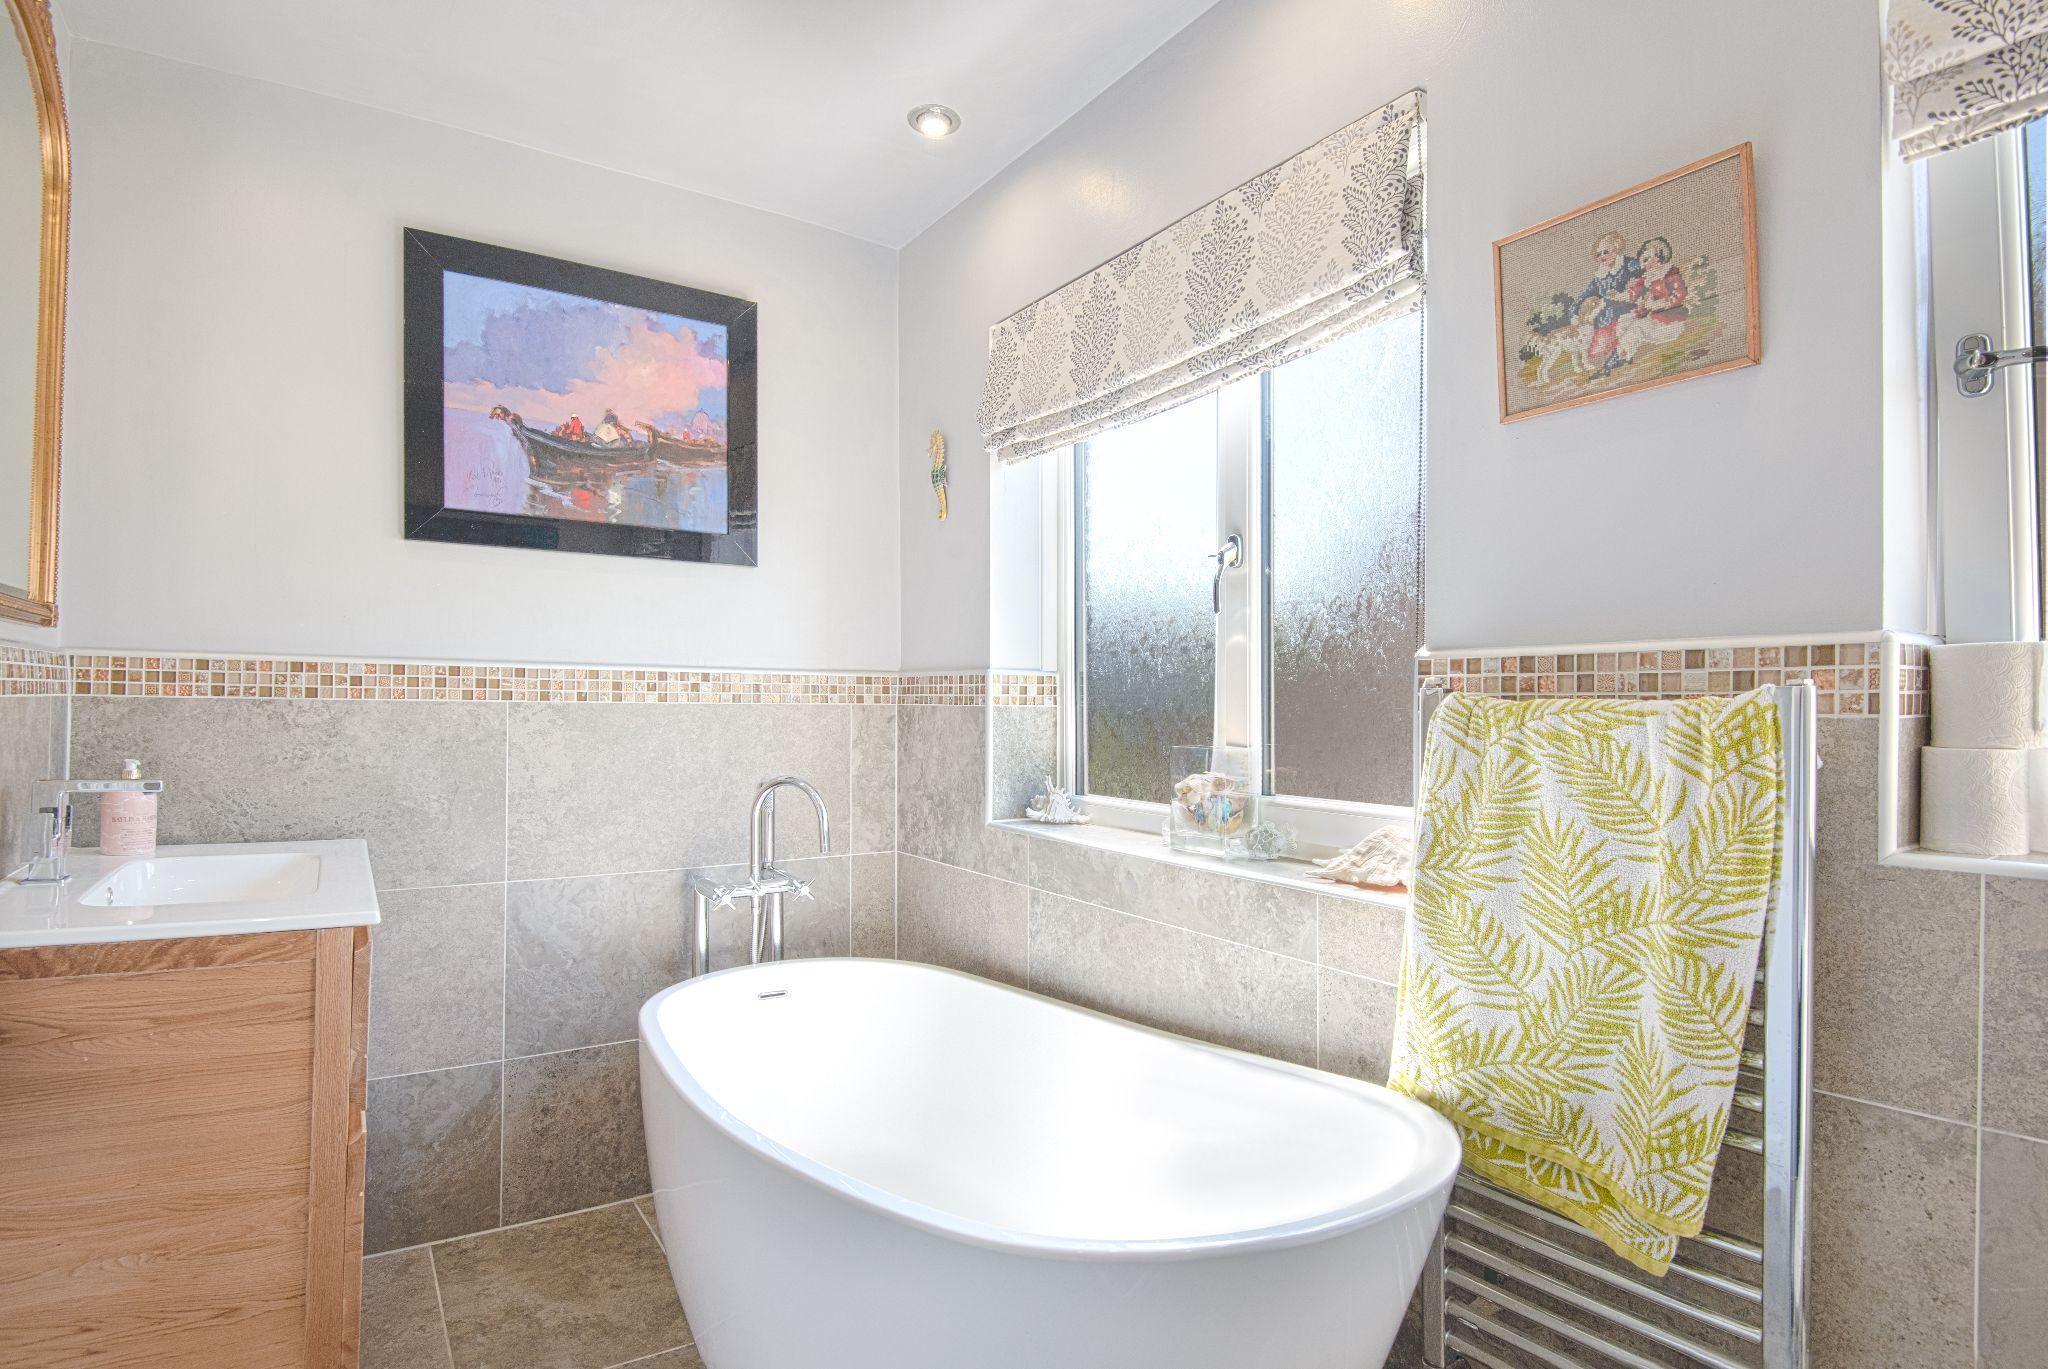 4 Bedroom Detached House For Sale - Photograph 30